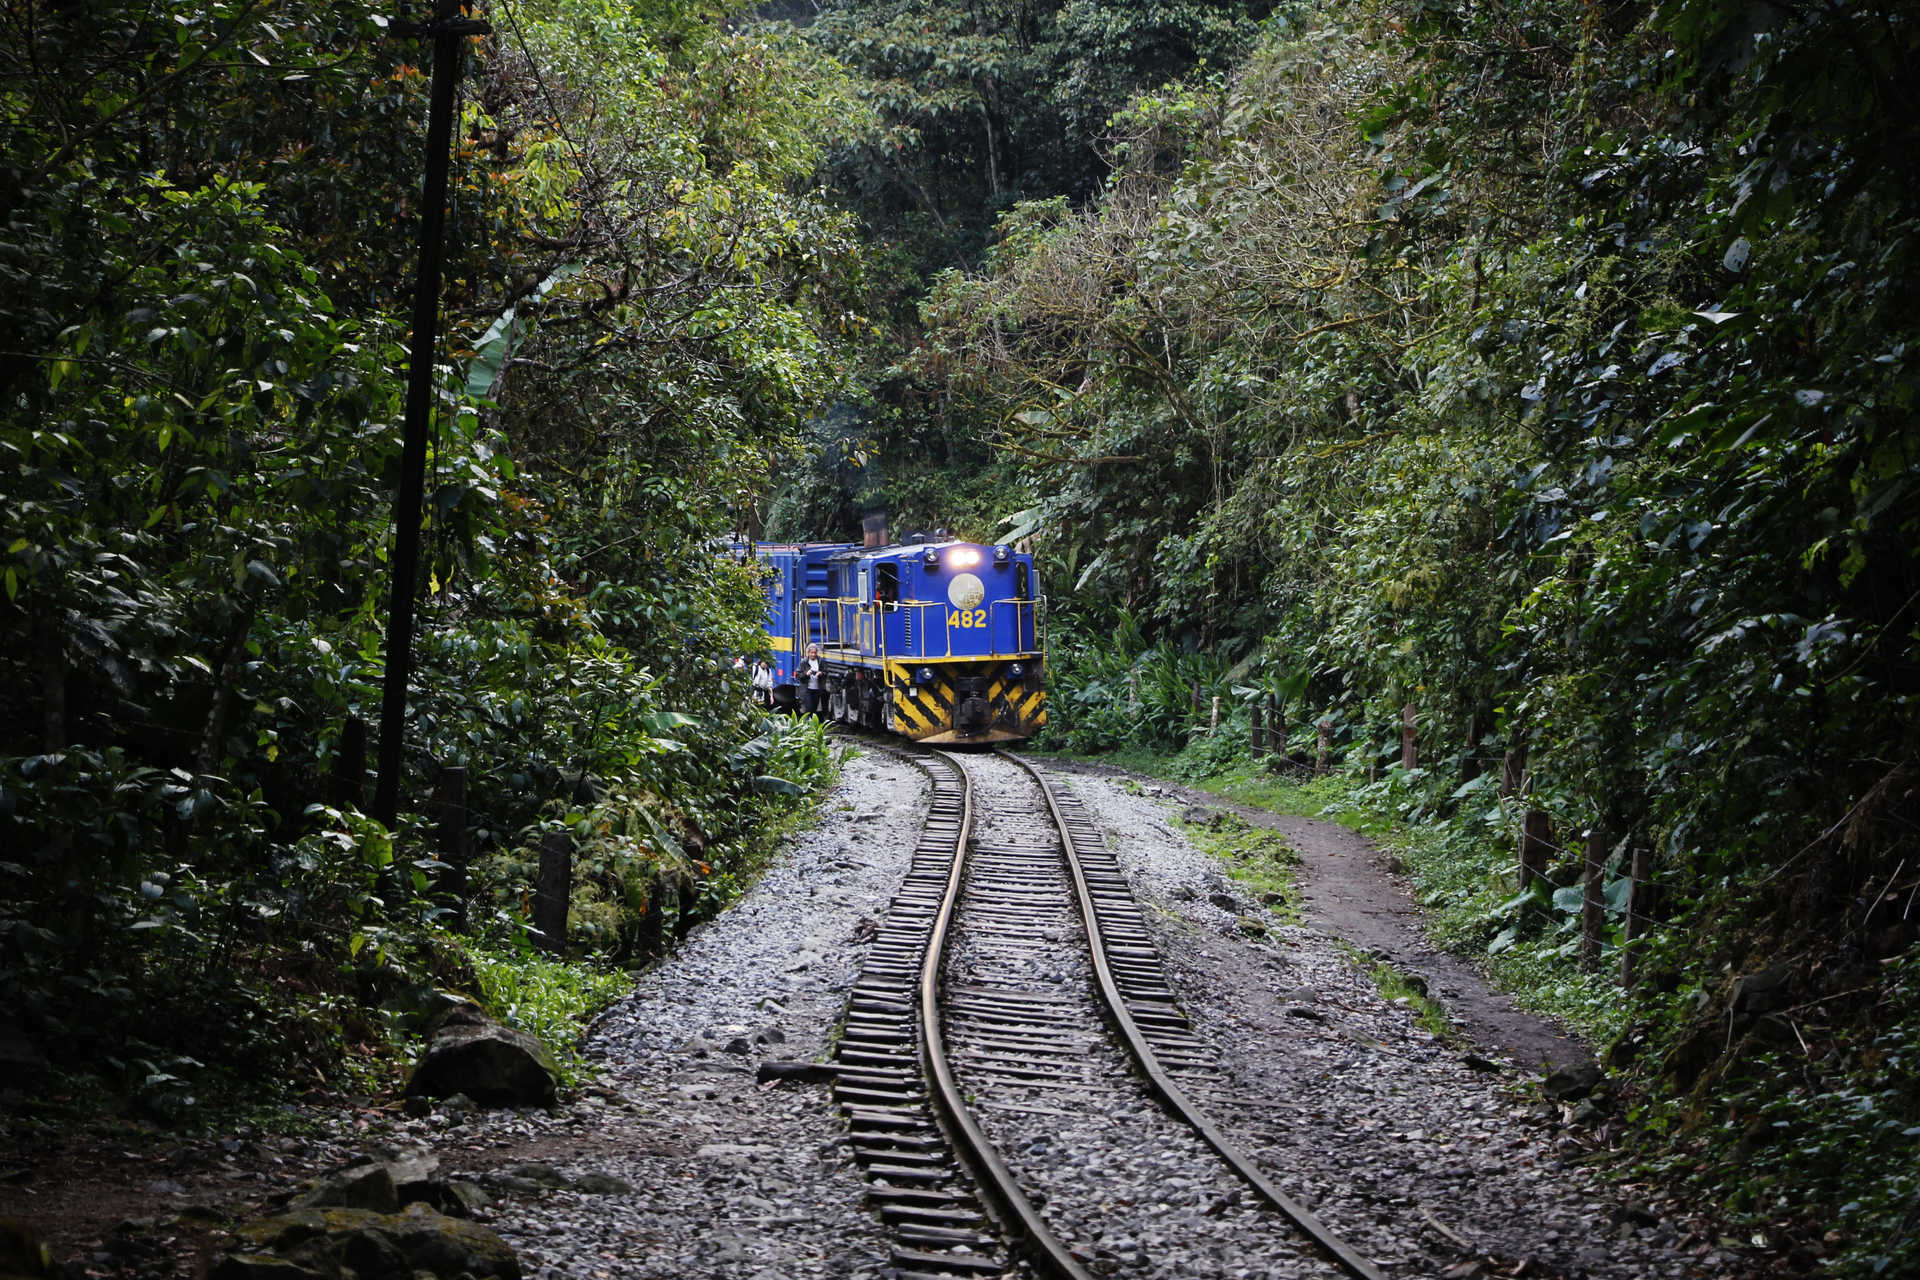 Touristic train going to Aguas Calientes